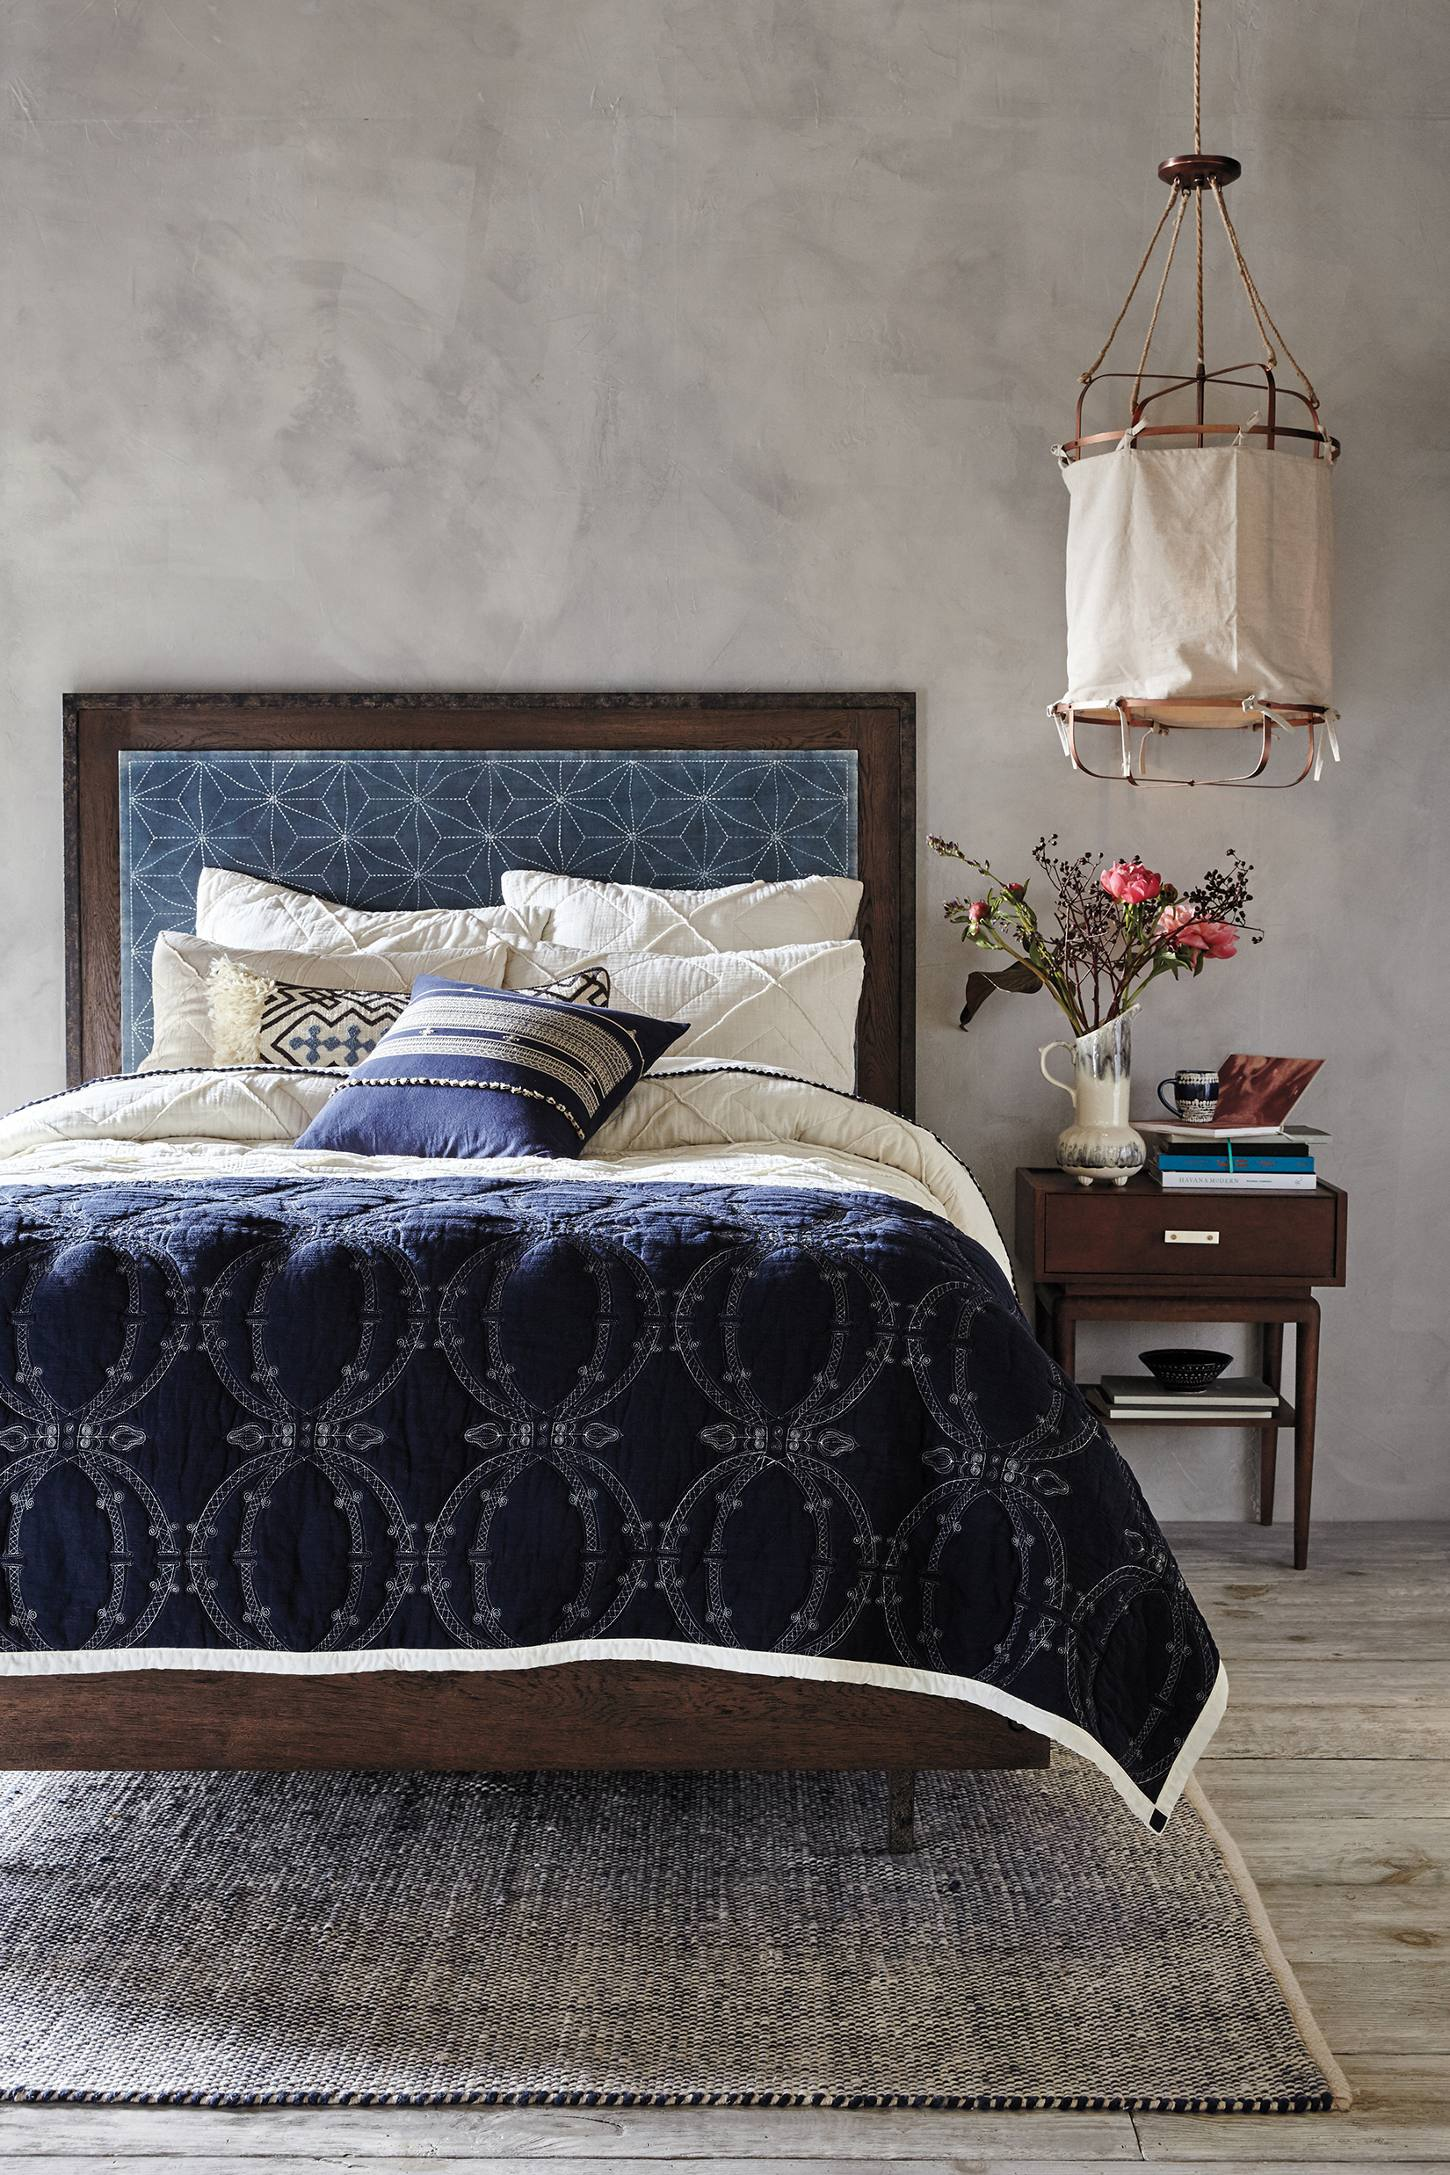 Elegant bedroom from Anthropologie